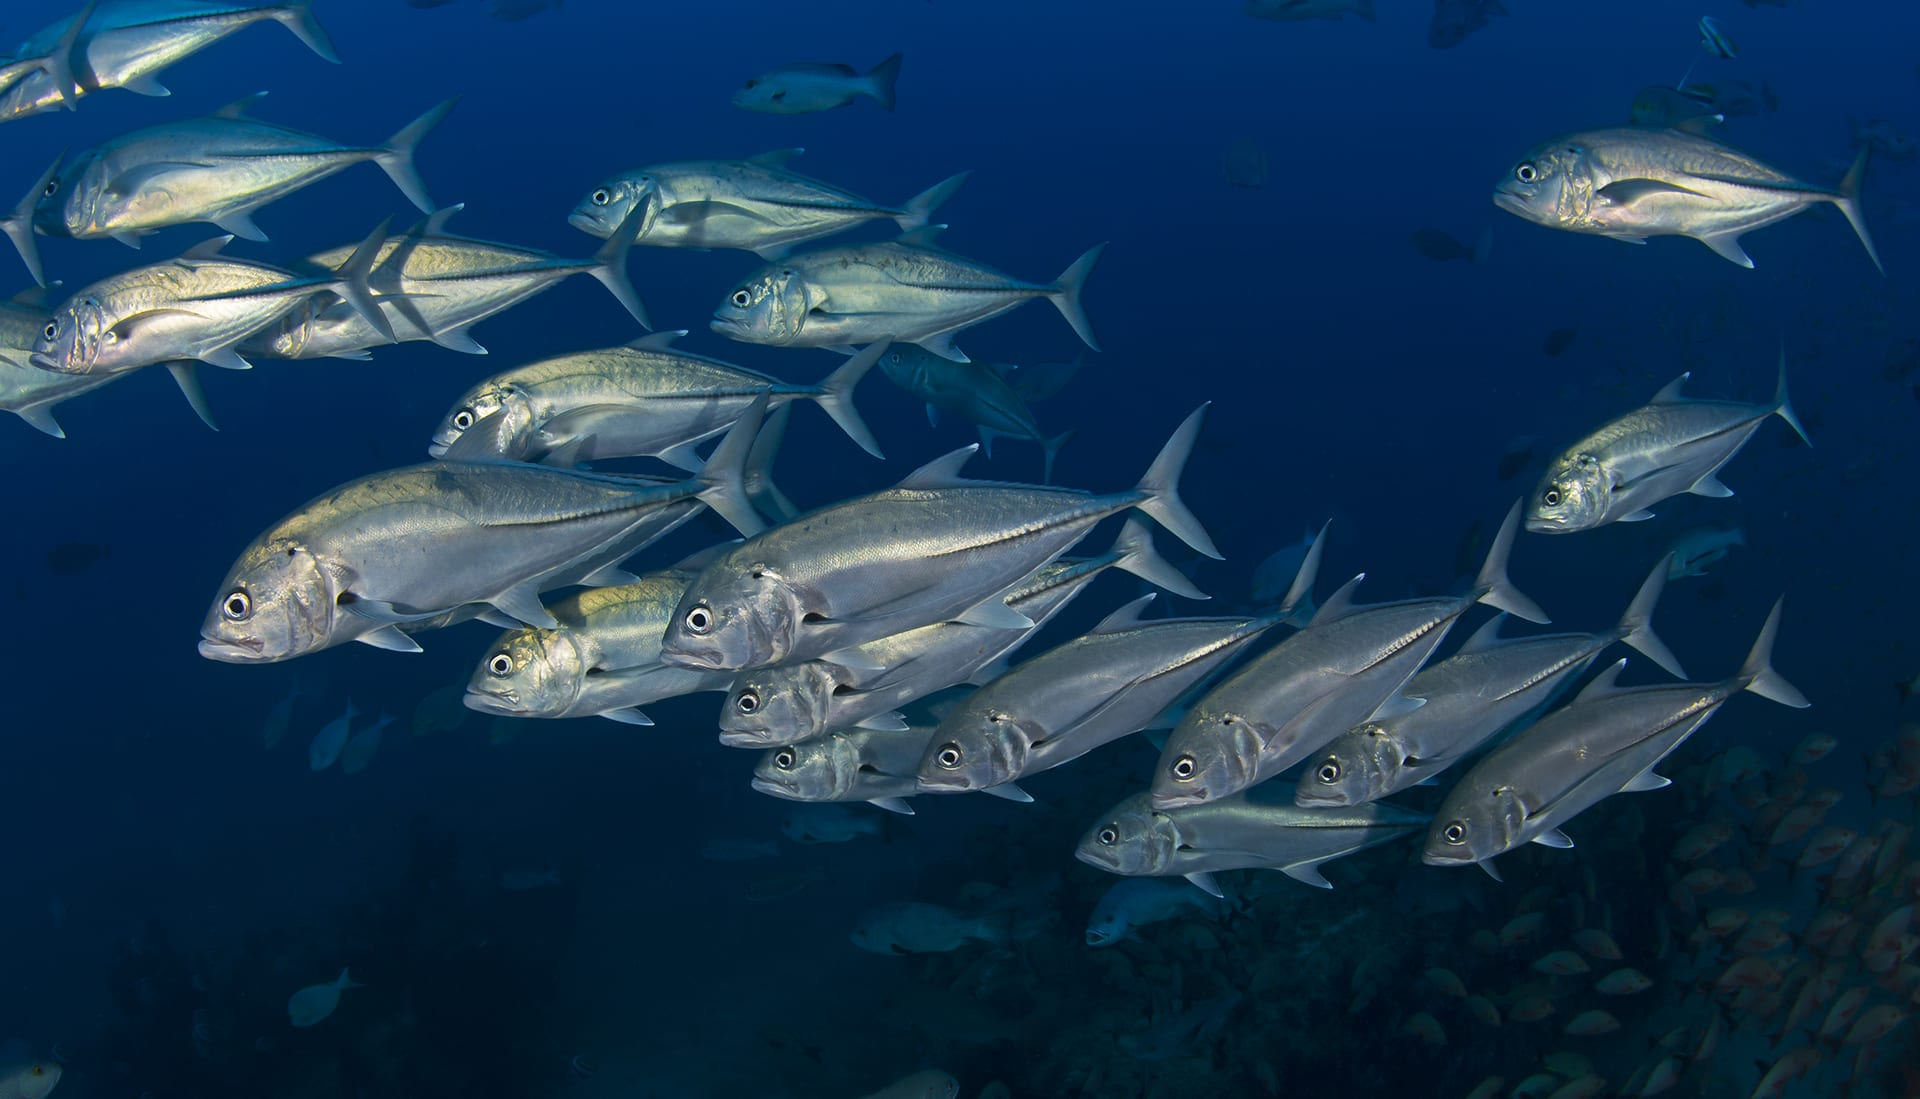 Hunting for fish in a school puts a predator's skills to the test. Imagine a sniper looking through the rifle scope trying to aim for one target in a rapidly moving, crowded sea of heads, tails, and fins. While schooling drops the risk of being found and eaten, it is also an advantageous strategy for predators. Predatory fishes have also figured out that schooling together, uniting their eyes and using them to hunt cooperatively, in exchange for splitting the harvest, can help them solve the problem of being outnumbered. Big-eye trevallies (seen here) form cooperative hunting parties to catch fusiliers, anchovies, and other forage fish in the Andamans. That is the beauty of coevolution, and the equilibrium between predator-prey, be it wildebeests and lions on land or anchovies and jacks in the ocean.